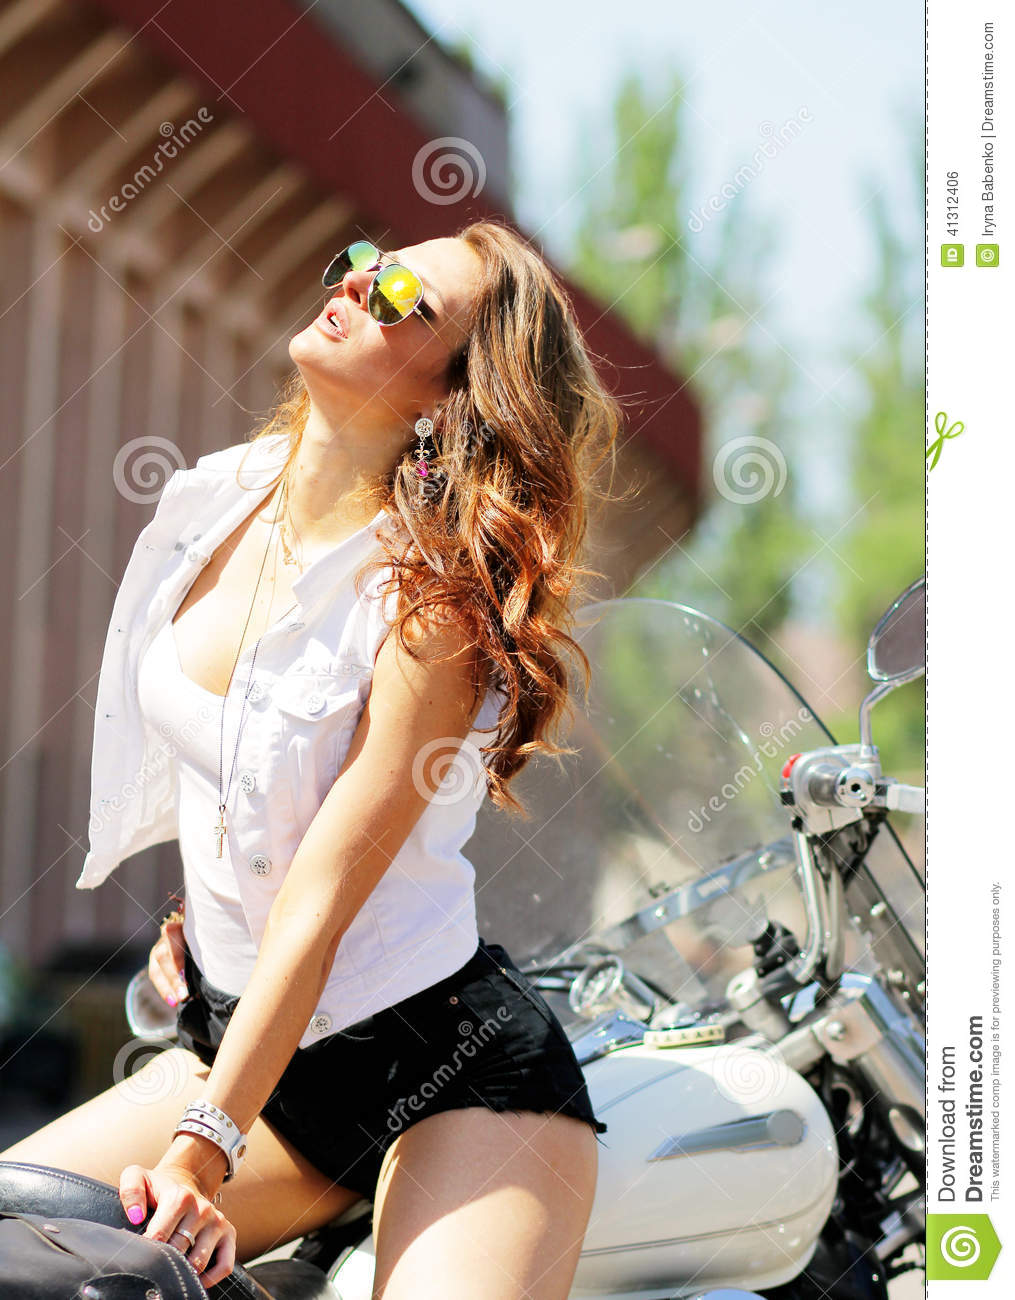 Stylish Girl On Colored Glasses On A Motorcycle Stock Photo